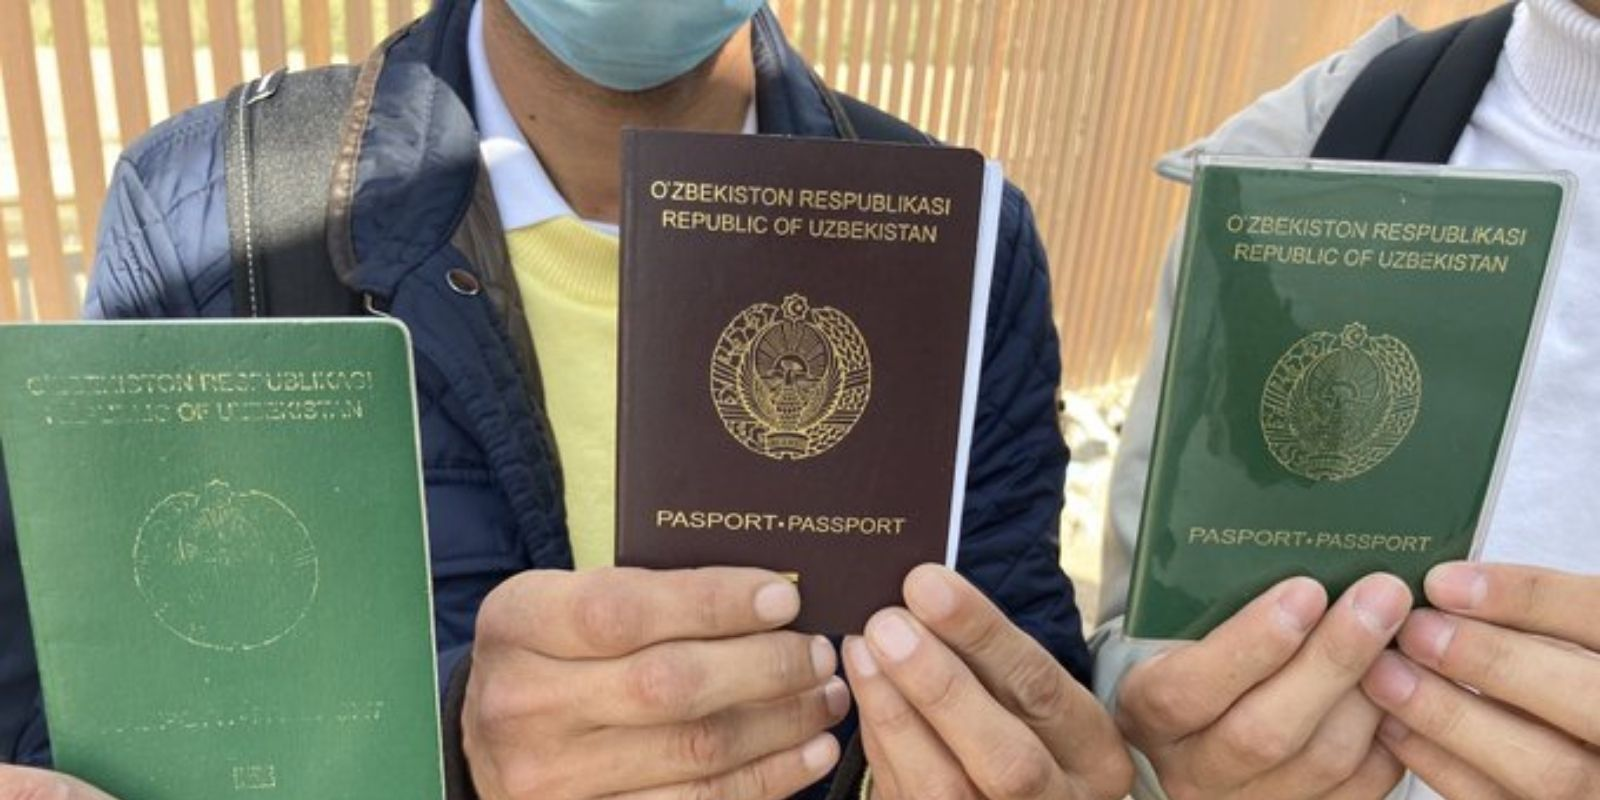 Journalist at the southern border reports MASSIVE flow of migrants, three of them show Uzbek passports